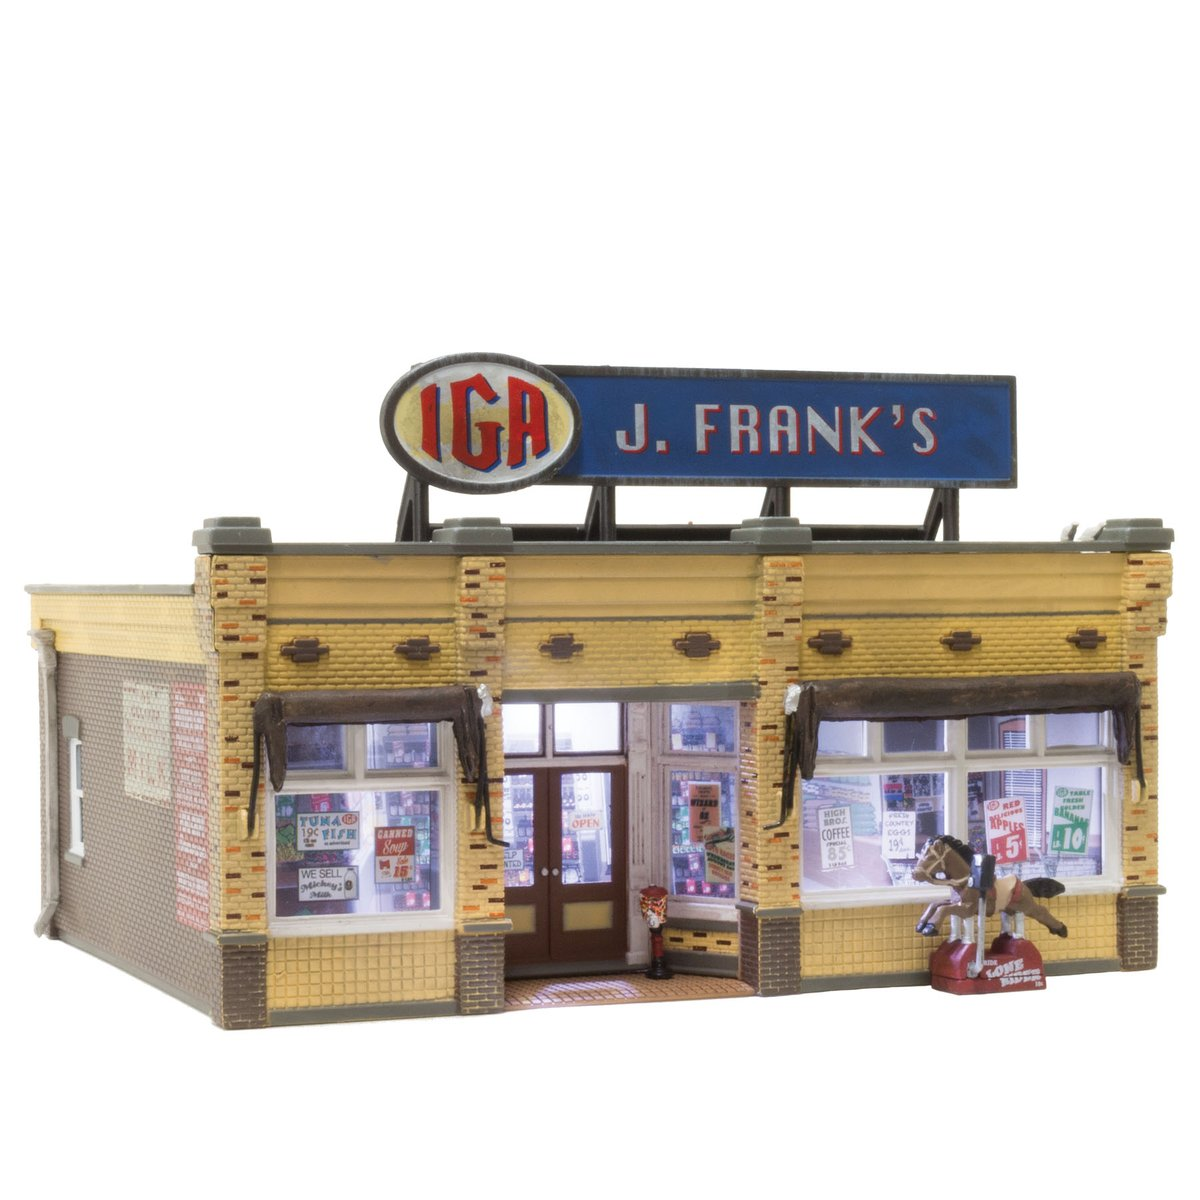 J. Franks Grocery is a great addition to any layout. Available for N, HO and O scales, the local grocer welcomes everyone with open arms and a jolly atmosphere. https://t.co/ljpA2izyEO